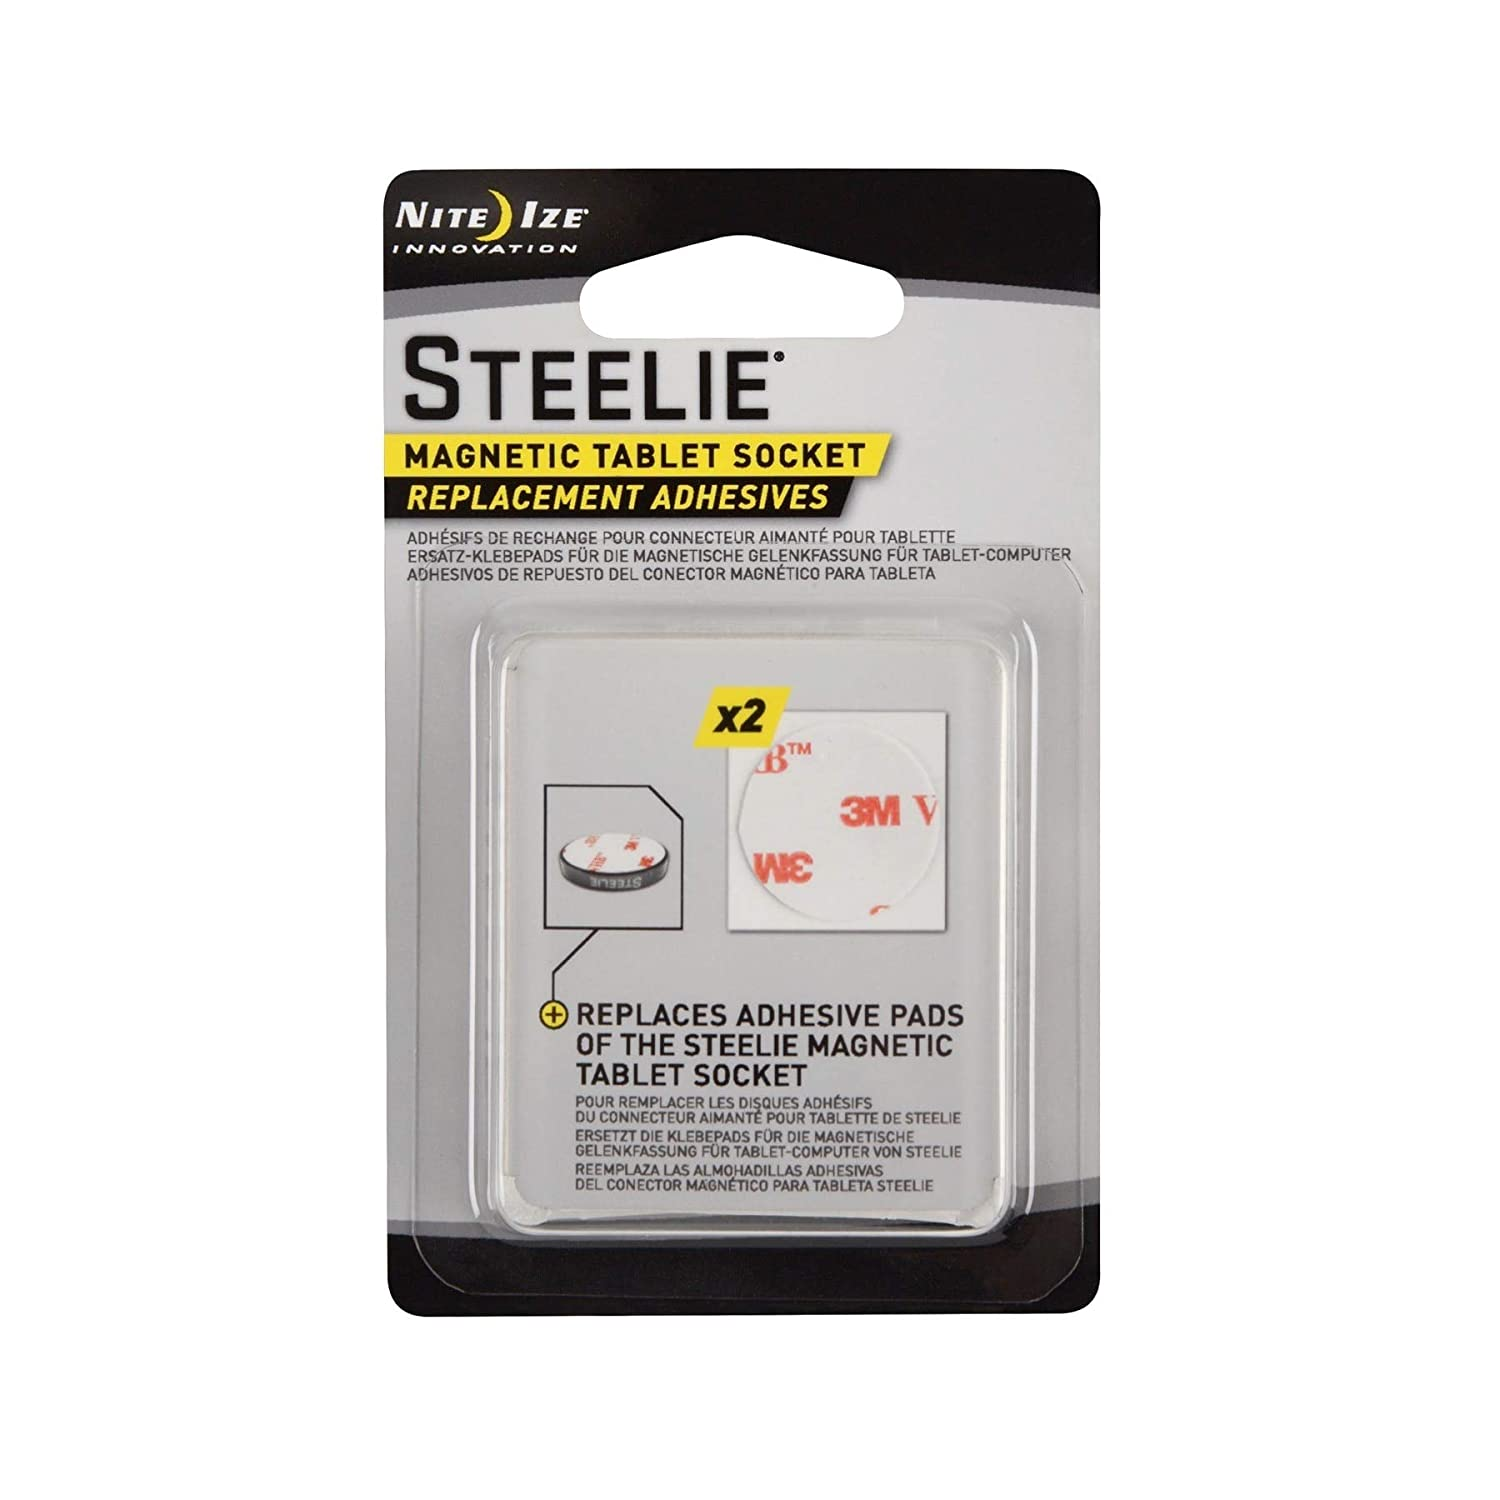 Amazon.com: Nite Ize Steelie Magnetic Tablet Socket Replacement Adhesives Kit (3-Pack of 2): Cell Phones & Accessories